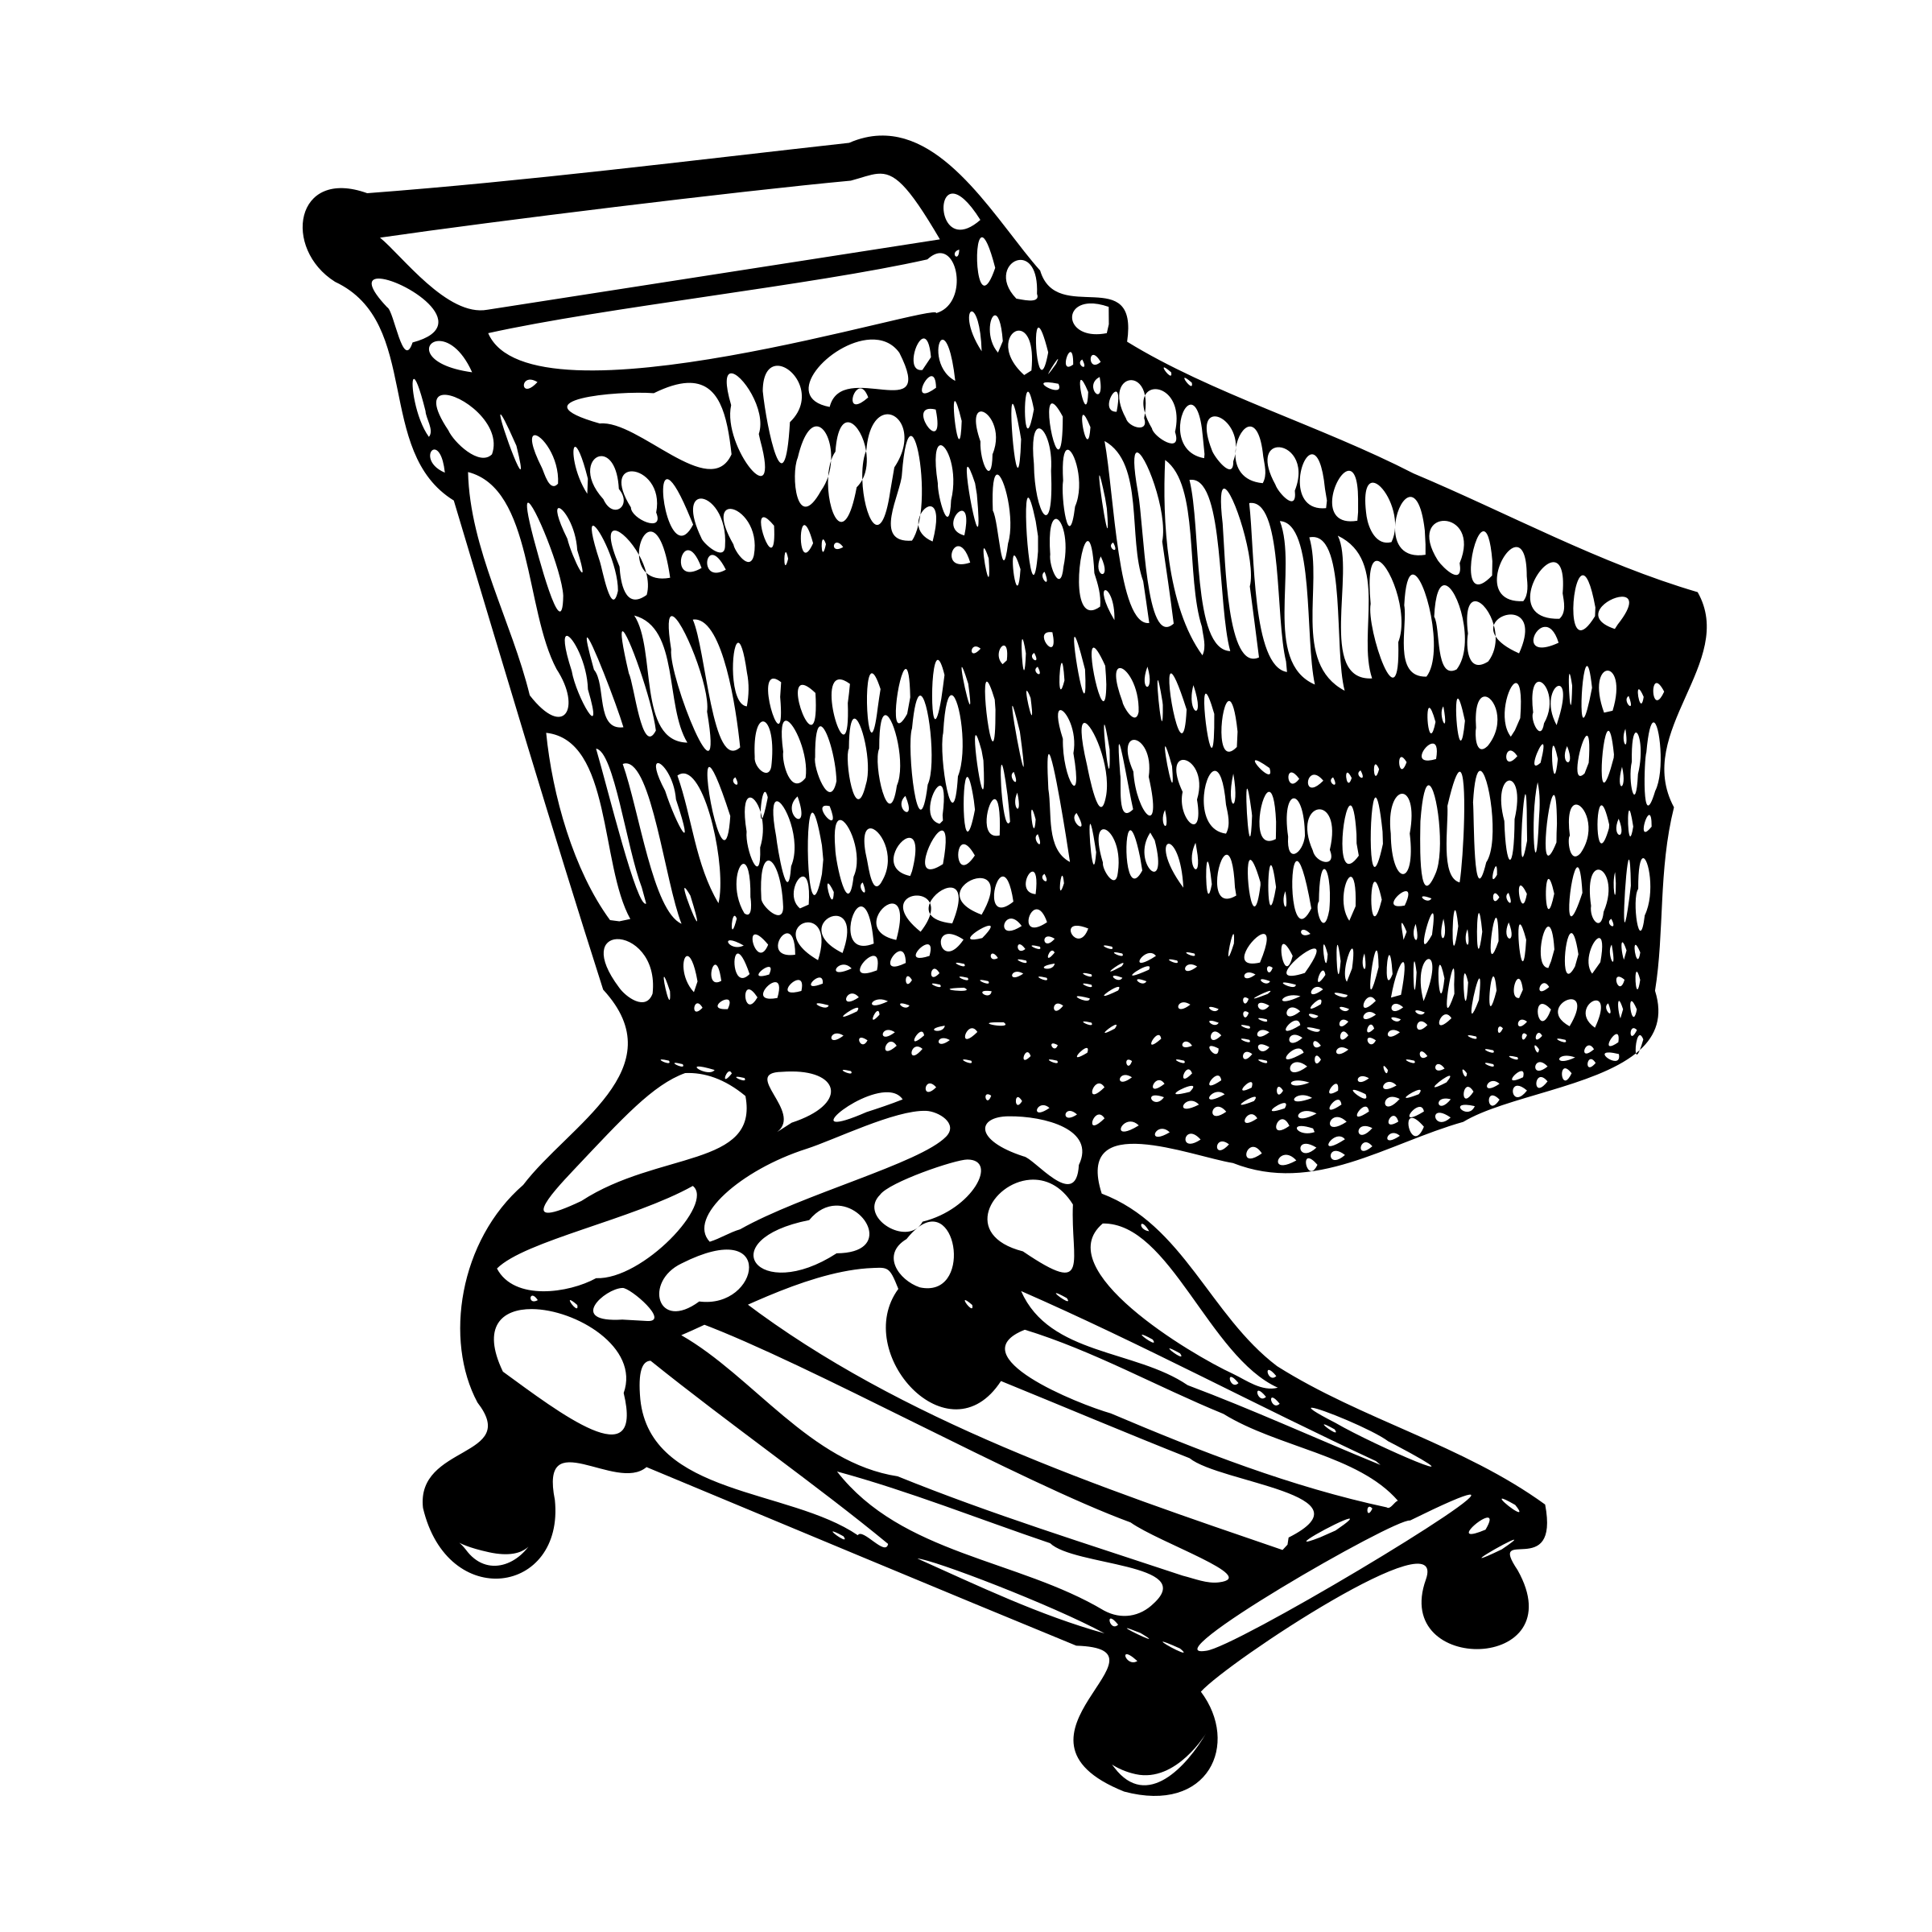 Shopping Cart Drawing At Getdrawings